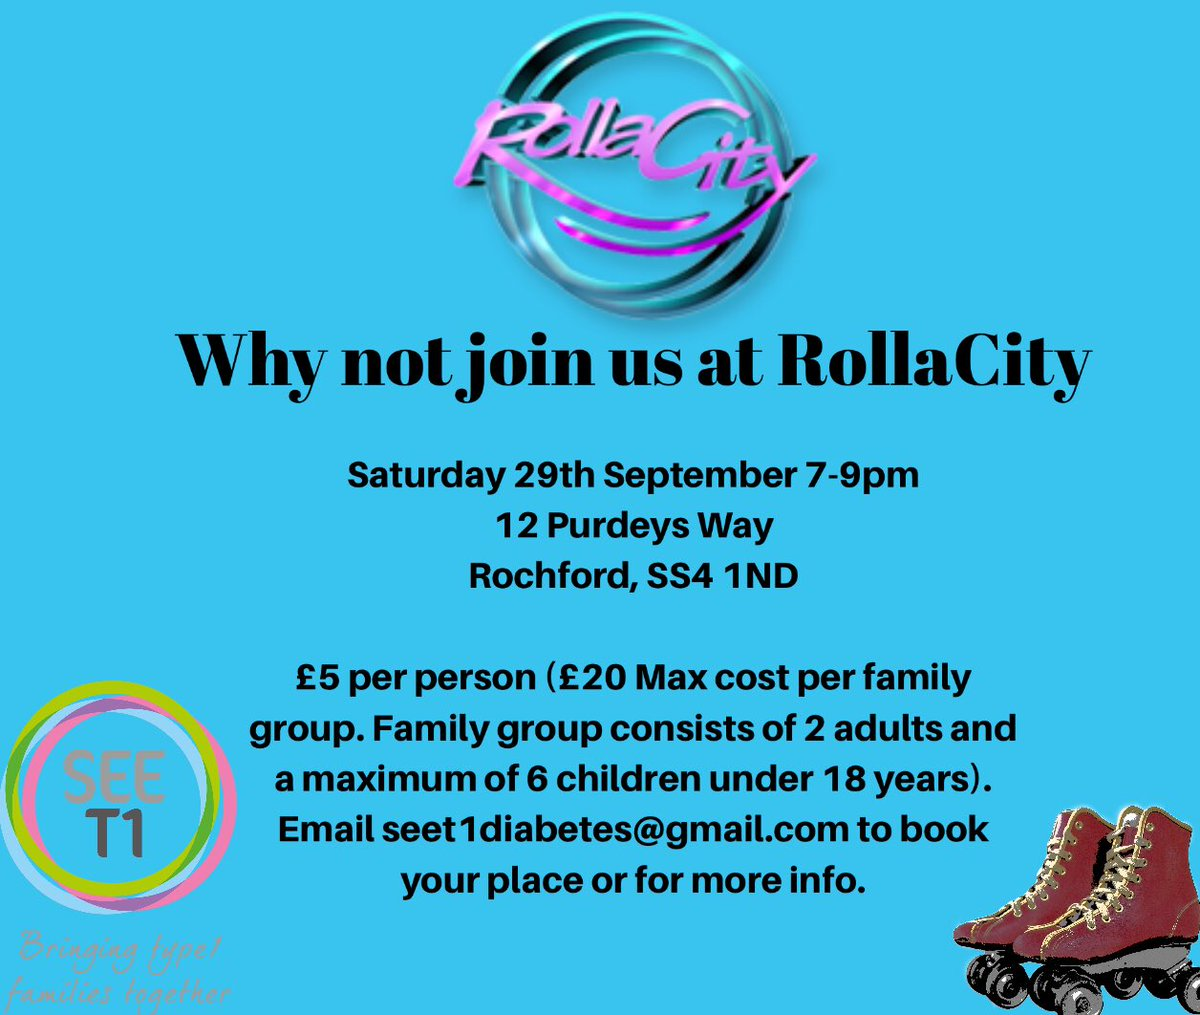 test Twitter Media - Looking forward to getting our #skates on @rollacityessex Why not join us? #Type1 #T1d #diabadass #diabuddies #Bringingtype1familiestogether #type1diabetes #Rollerskates #fun #essex https://t.co/AEp7KteZSZ